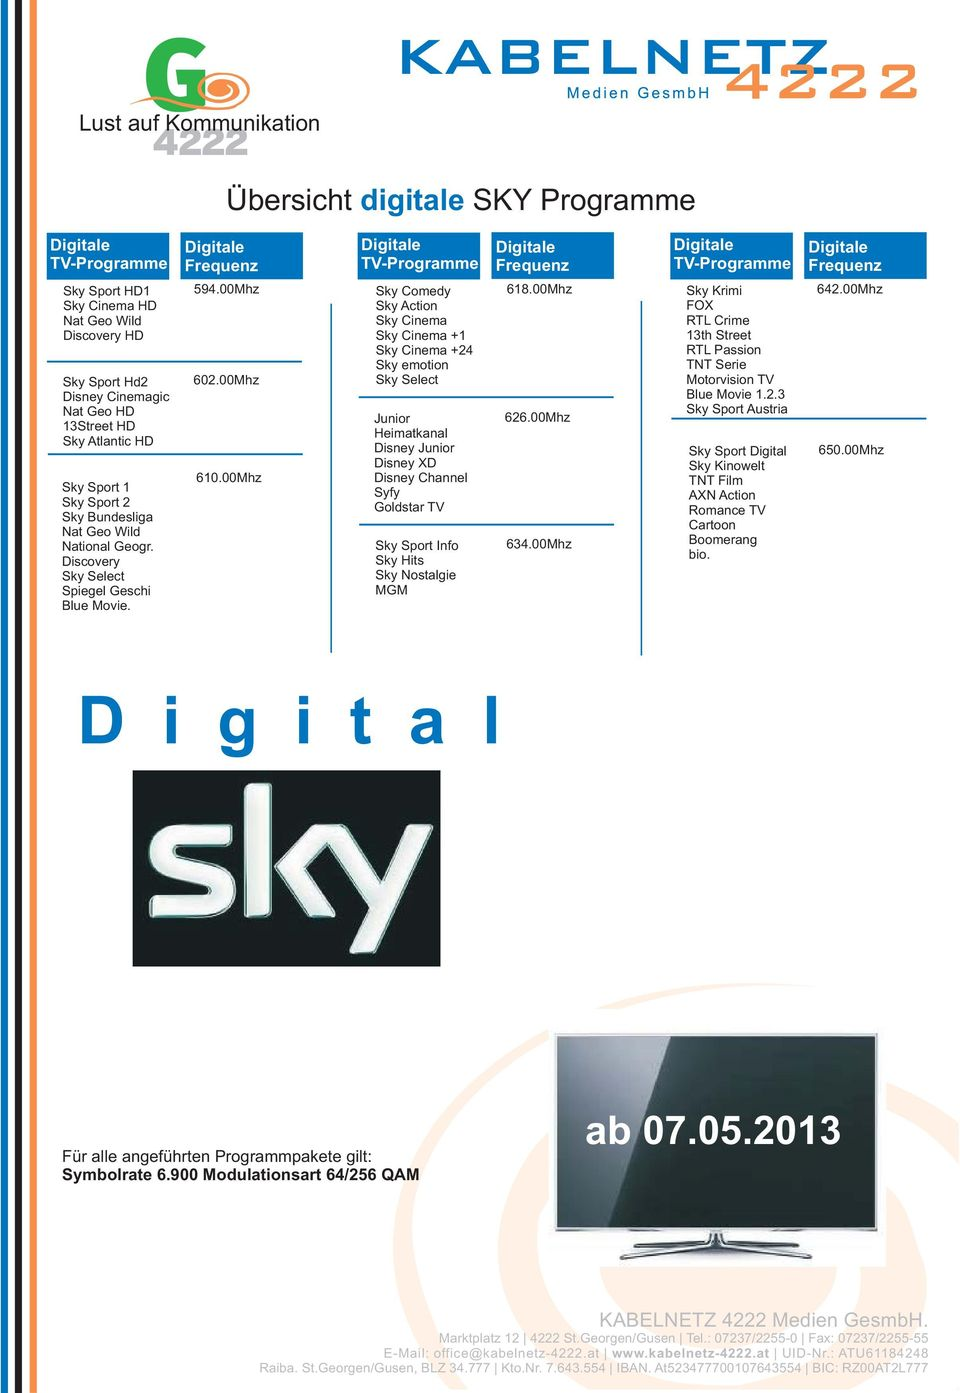 00Mhz Sky Comedy Sky Action Sky Cinema Sky Cinema +1 Sky Cinema +24 Sky emotion Sky Select Junior Heimatkanal Disney Junior Disney XD Disney Channel Syfy Goldstar TV Sky Sport Info Sky Hits Sky